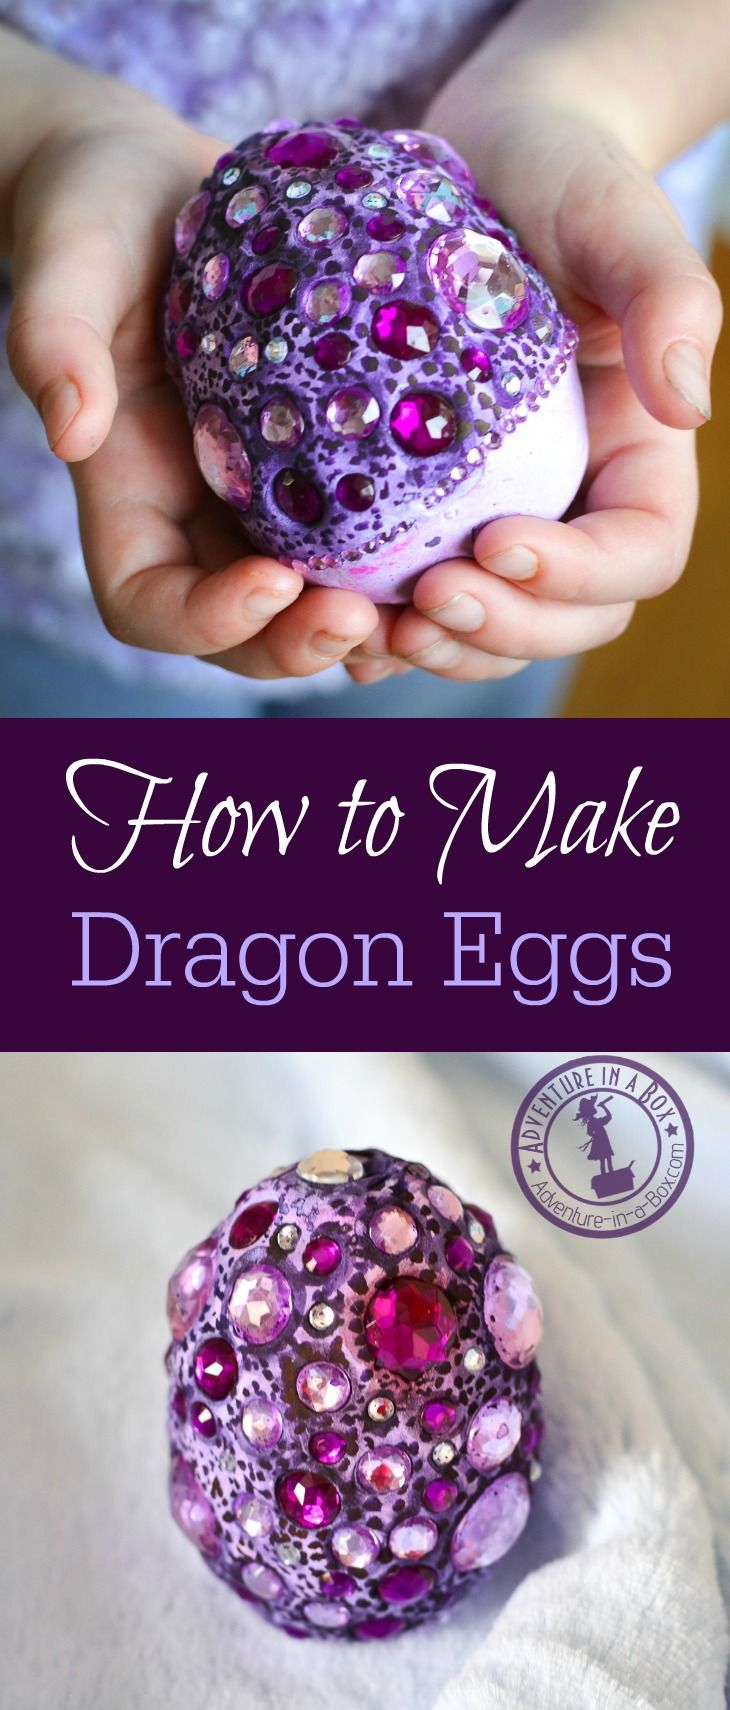 DIY Craft: How to make dragon eggs from air-dry clay. Beautiful fantasy craft for kids. Fun project for Easter and all year round!